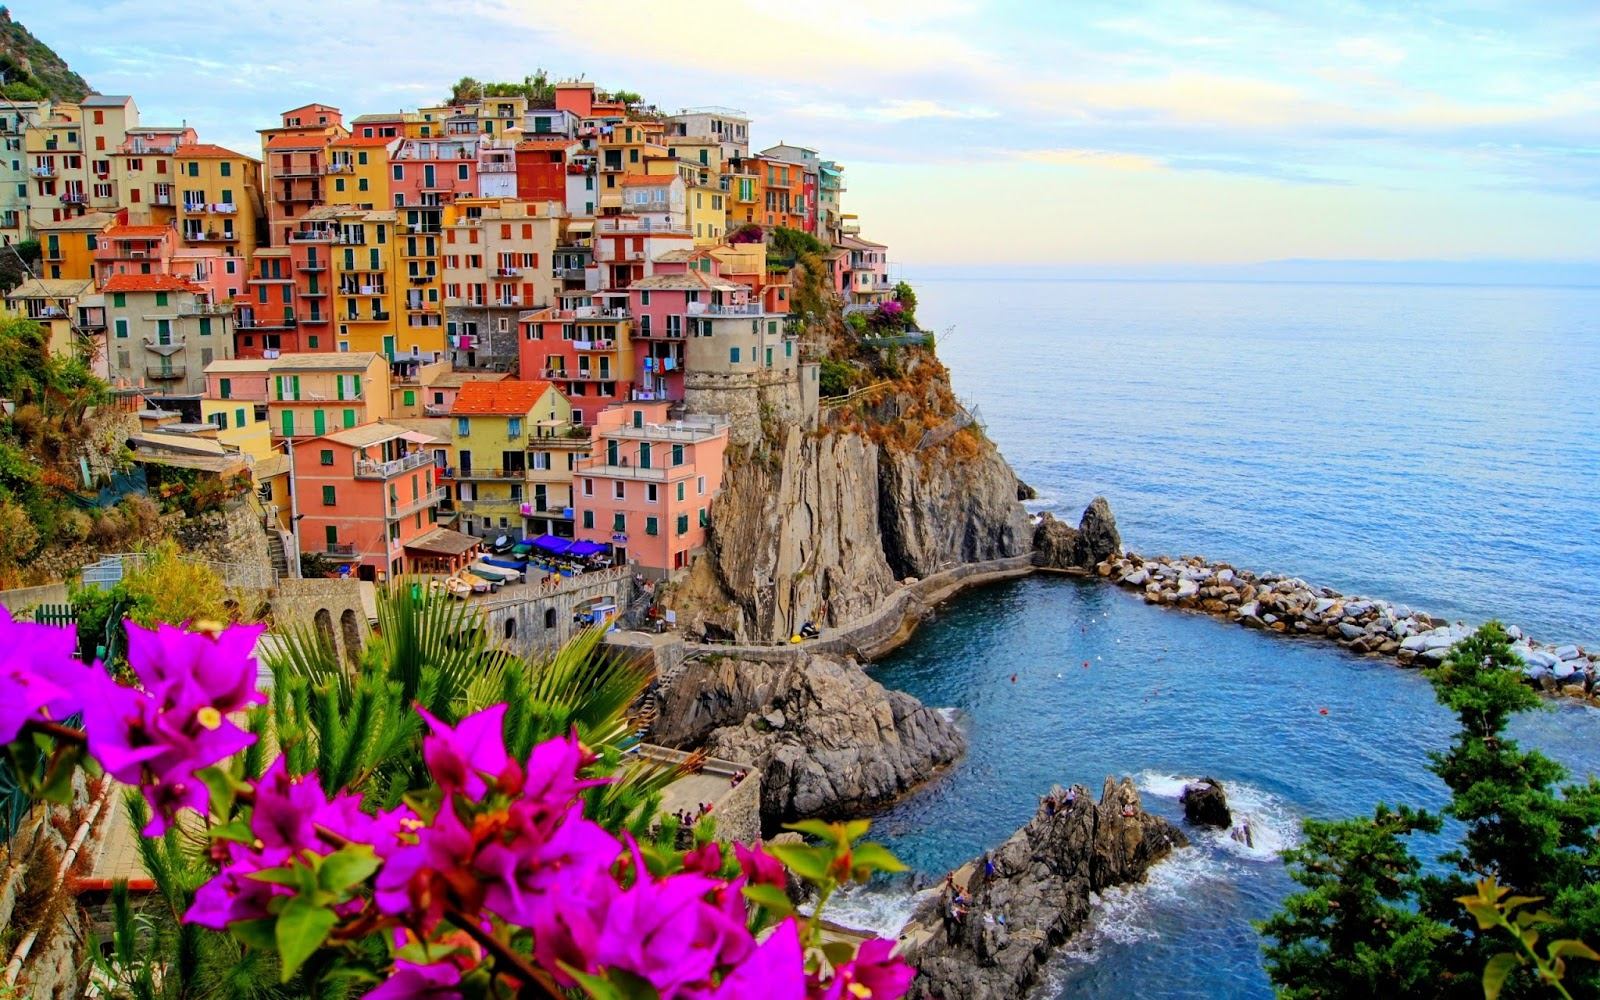 Miss happyfeet italy 15 most beautiful citiestowns you should not italy 15 most beautiful citiestowns you should not miss on your next trip to italy altavistaventures Image collections